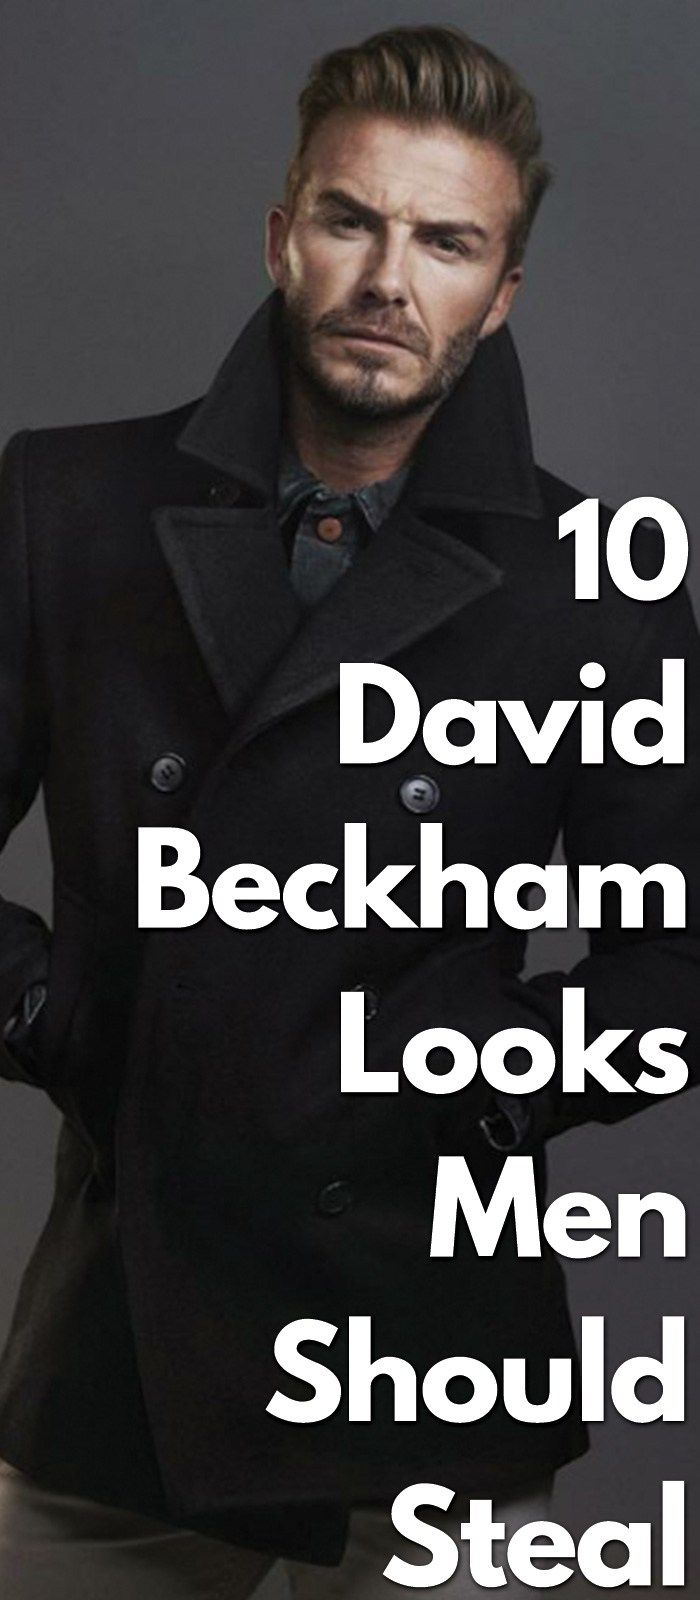 How To Steal David Beckham's Style? - Mens Fashion - TheUnstitchd.com